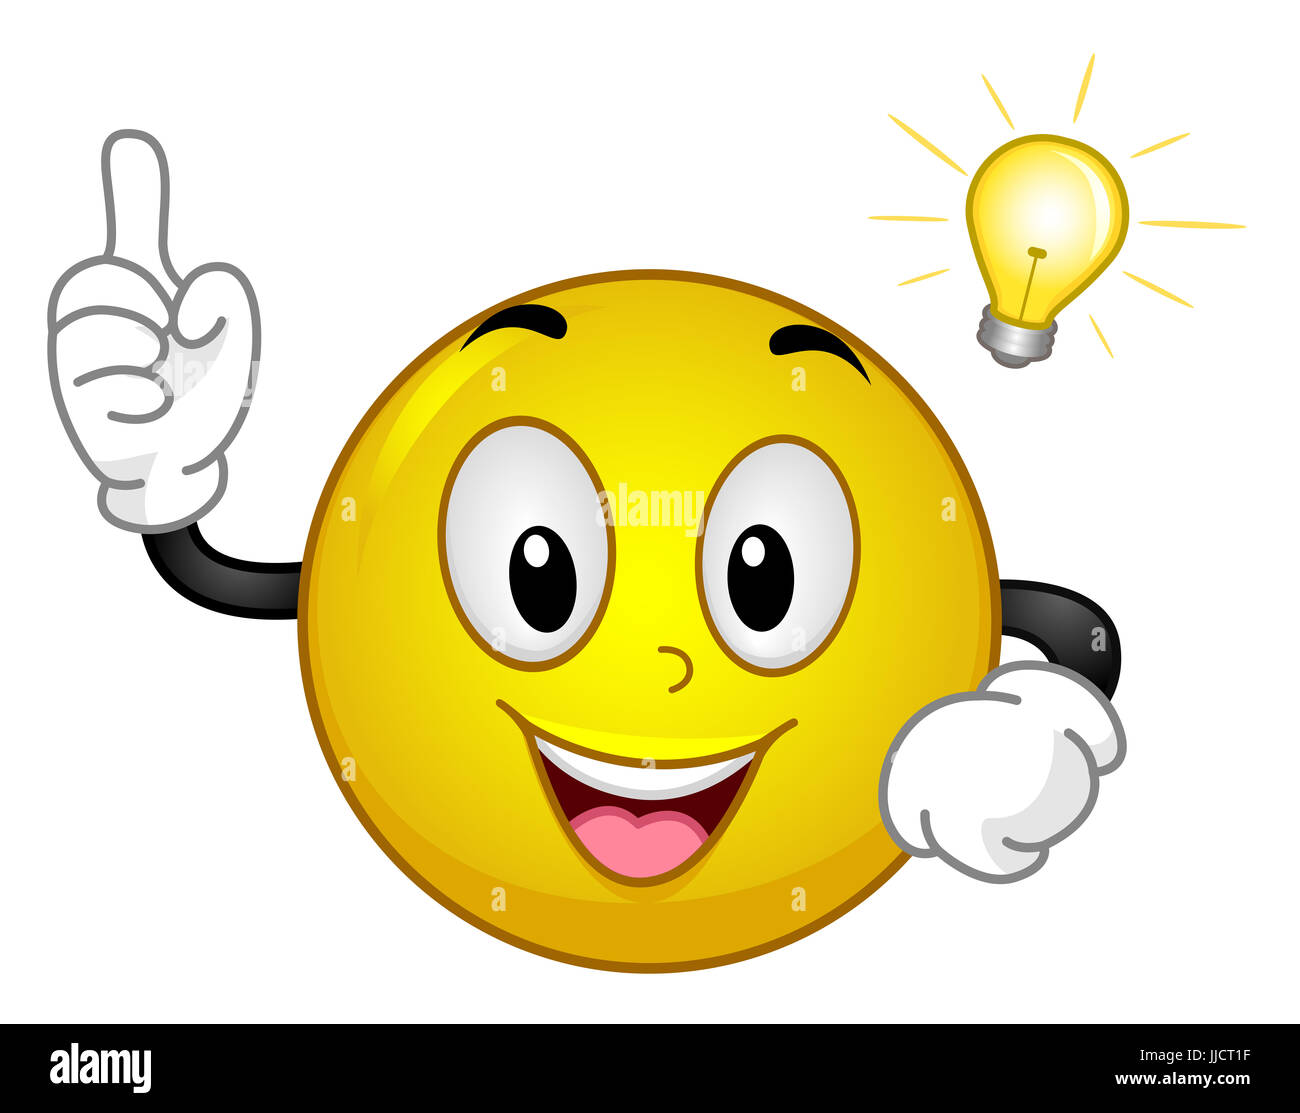 mascot illustration of an excited yellow smiley having an aha moment